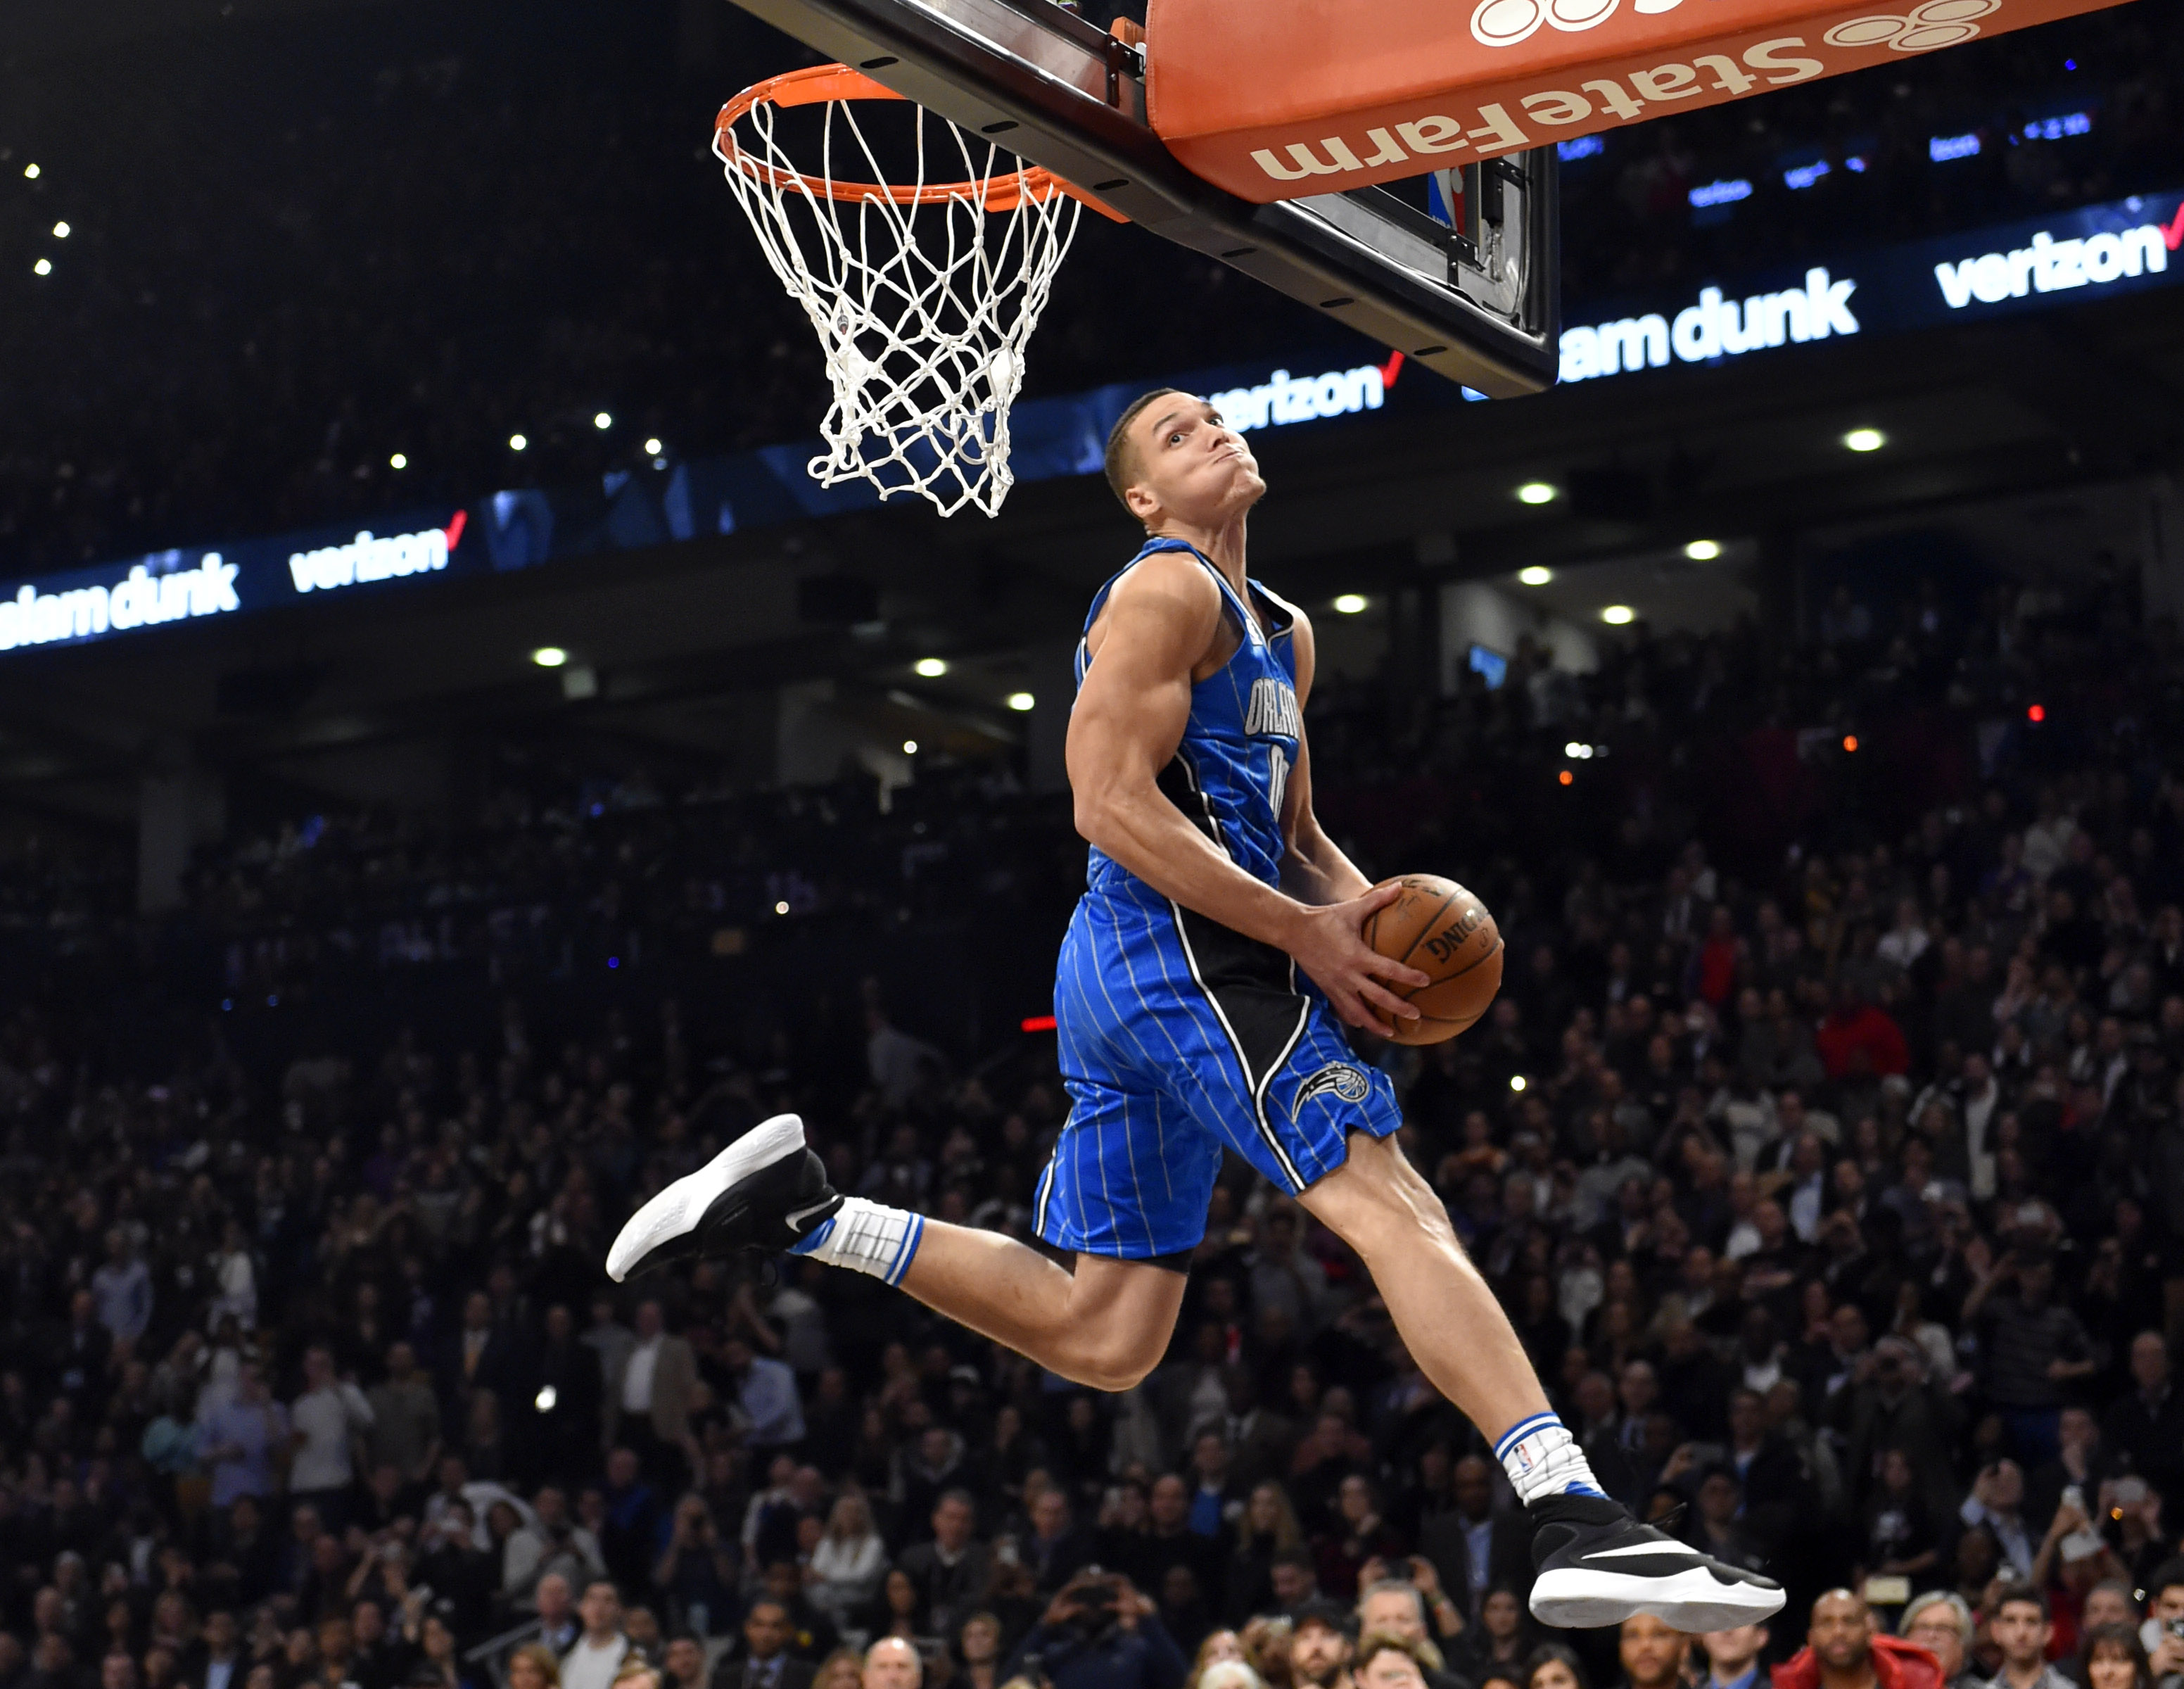 NBA All-Star Saturday night 2017 live stream: How to watch ...